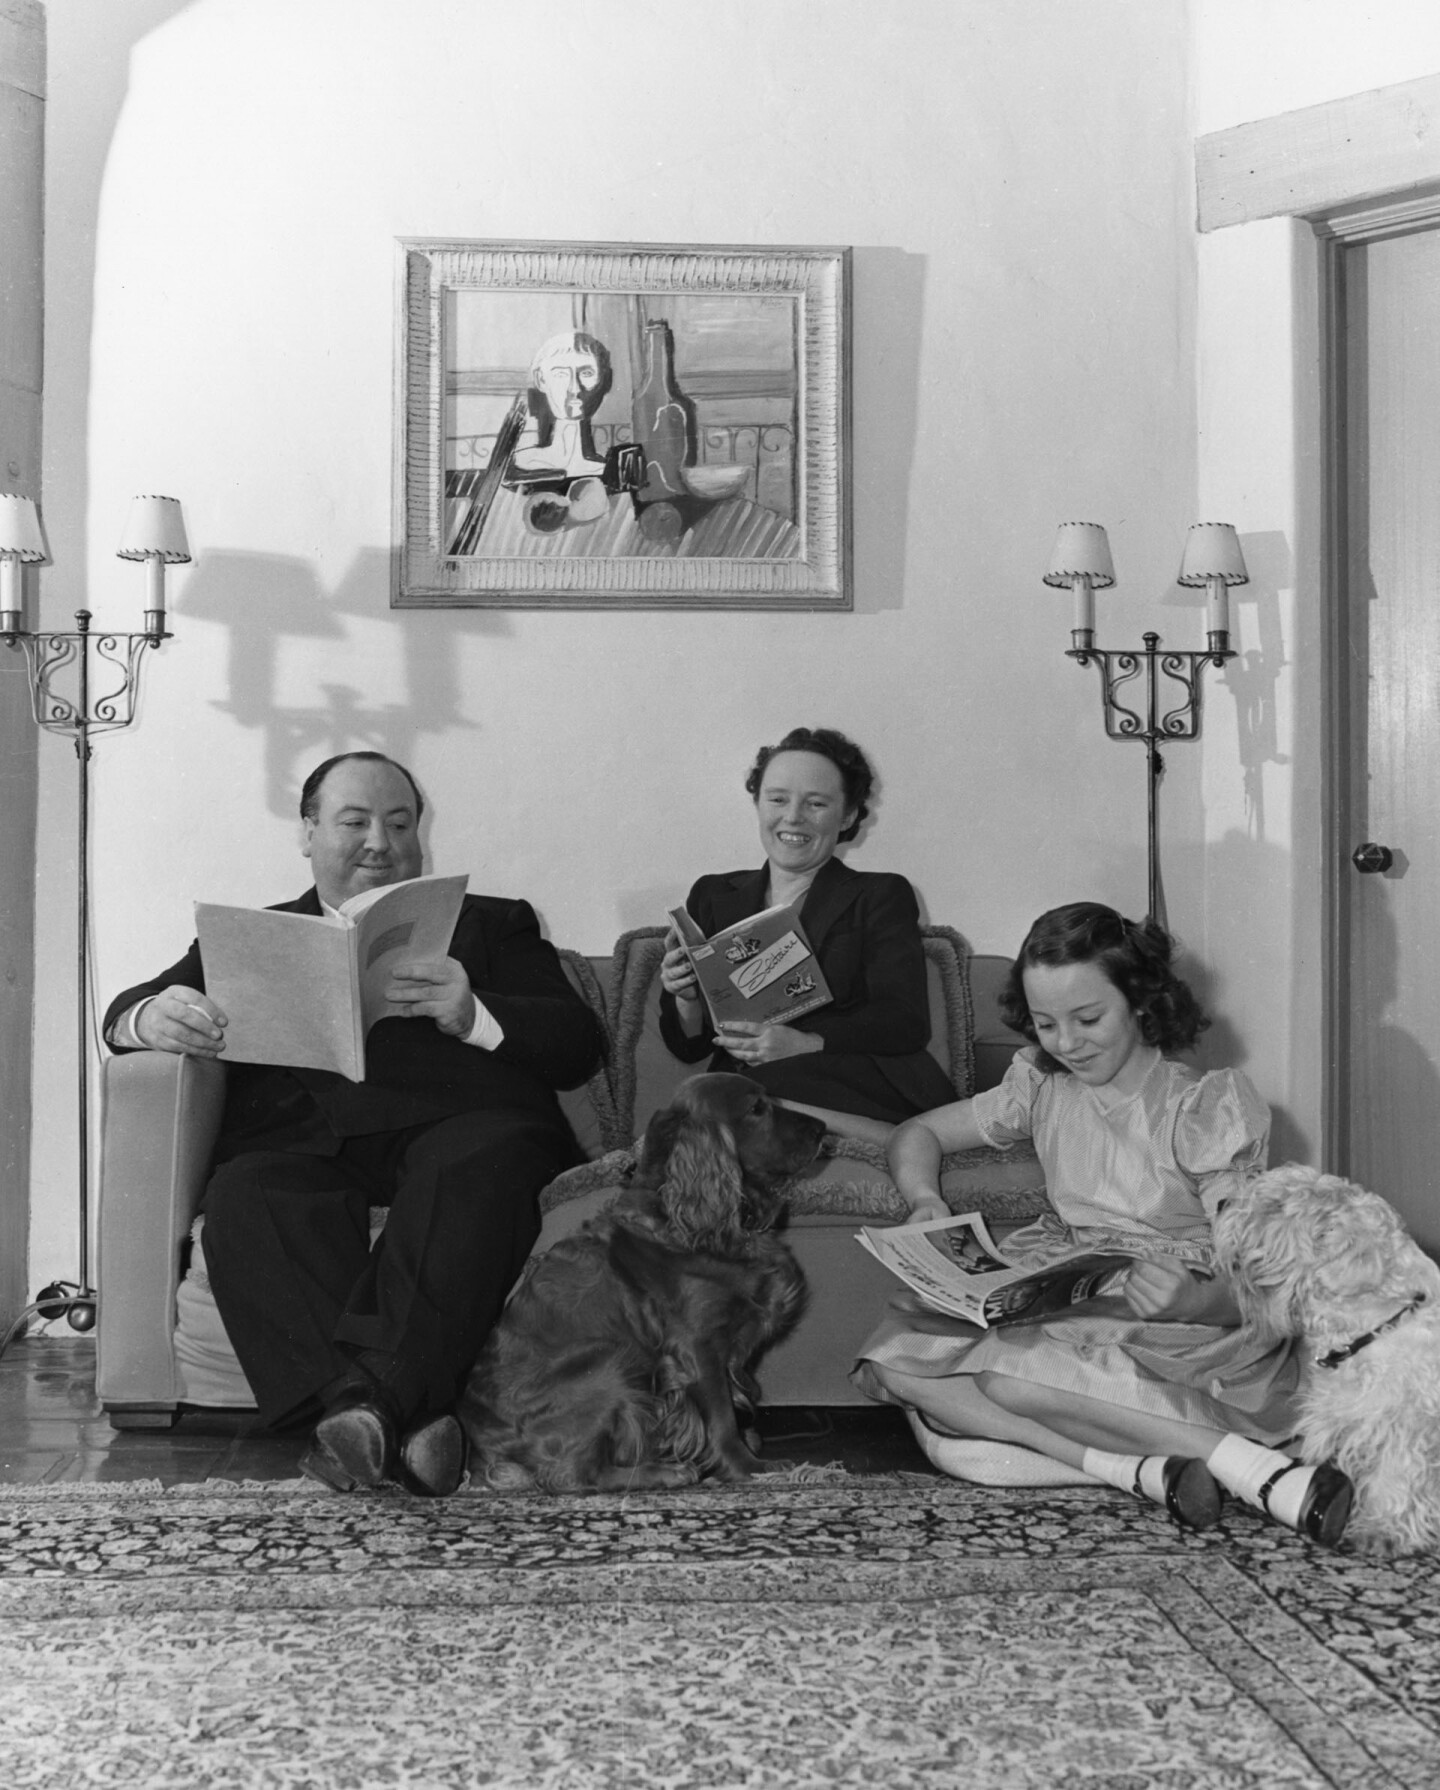 Alfred Hitchcock with his wife Alma Reville and their daughter Patricia Hitchcock at their California home, ca. 1941.